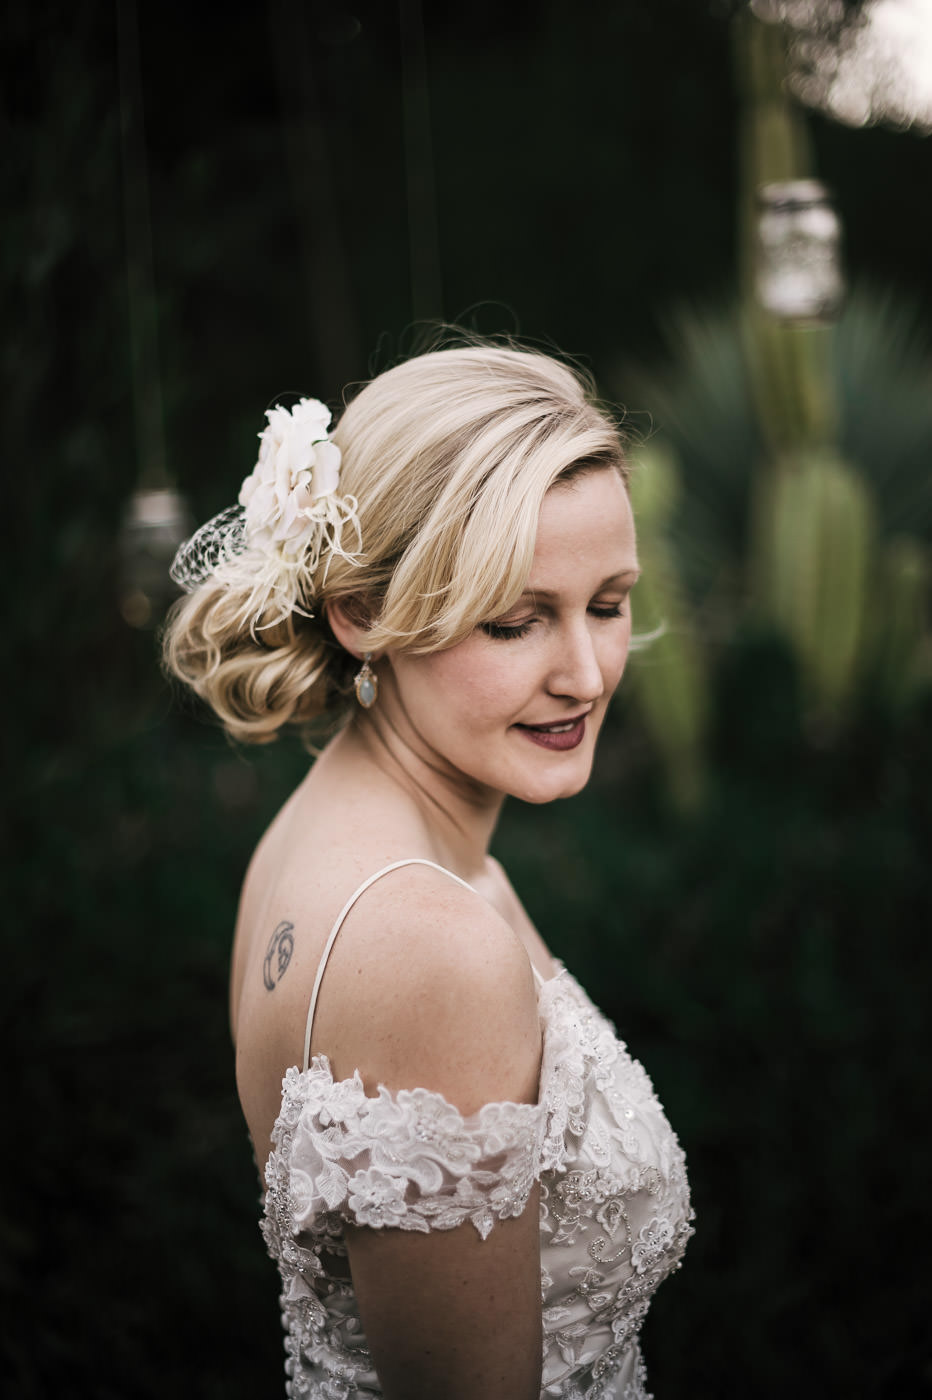 gorgeous vintage styled bride poses for portraits before her wedding at the whispering oaks terrace venue.